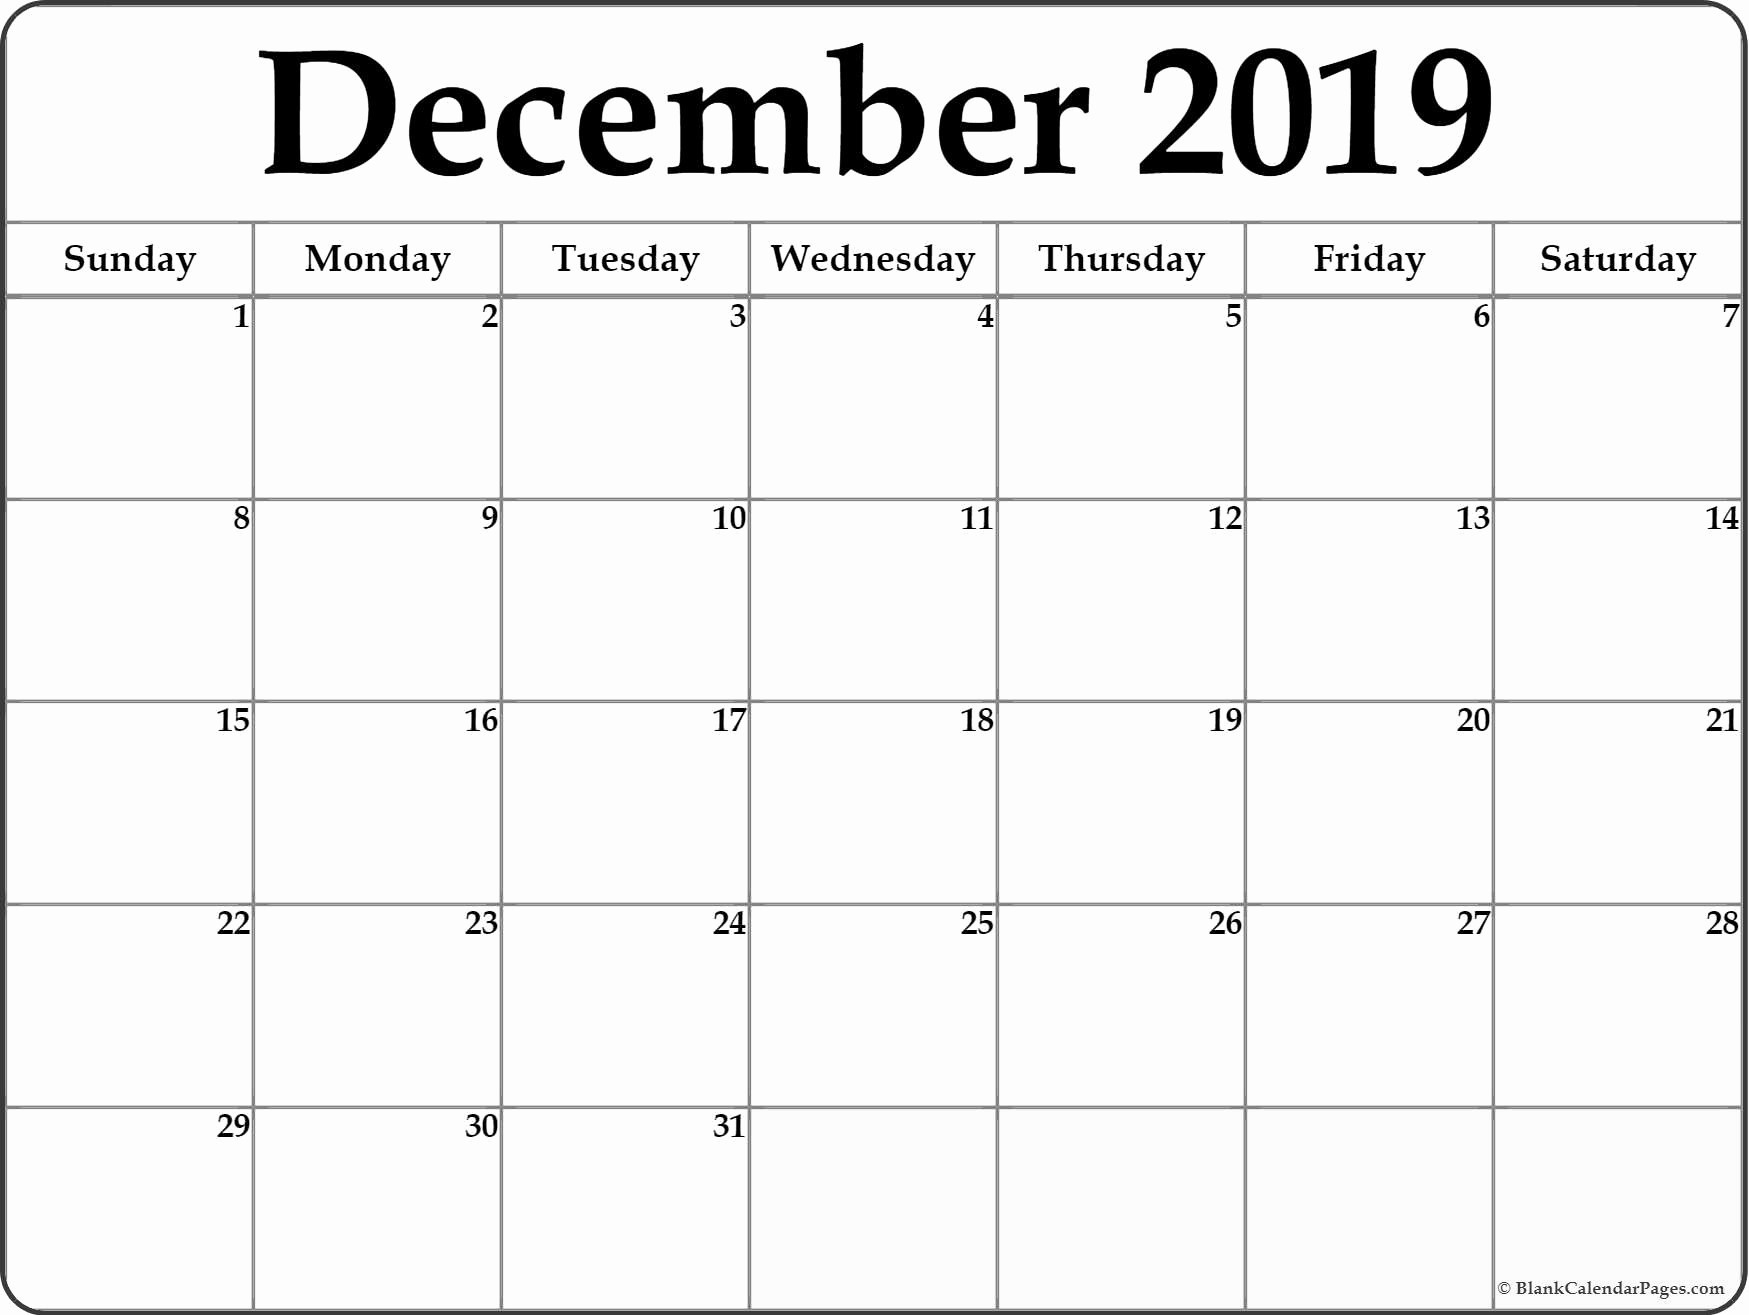 Calendar October 2019 To December 2019 | Calendar Template  Rancholasvoces Free Printable Calendar